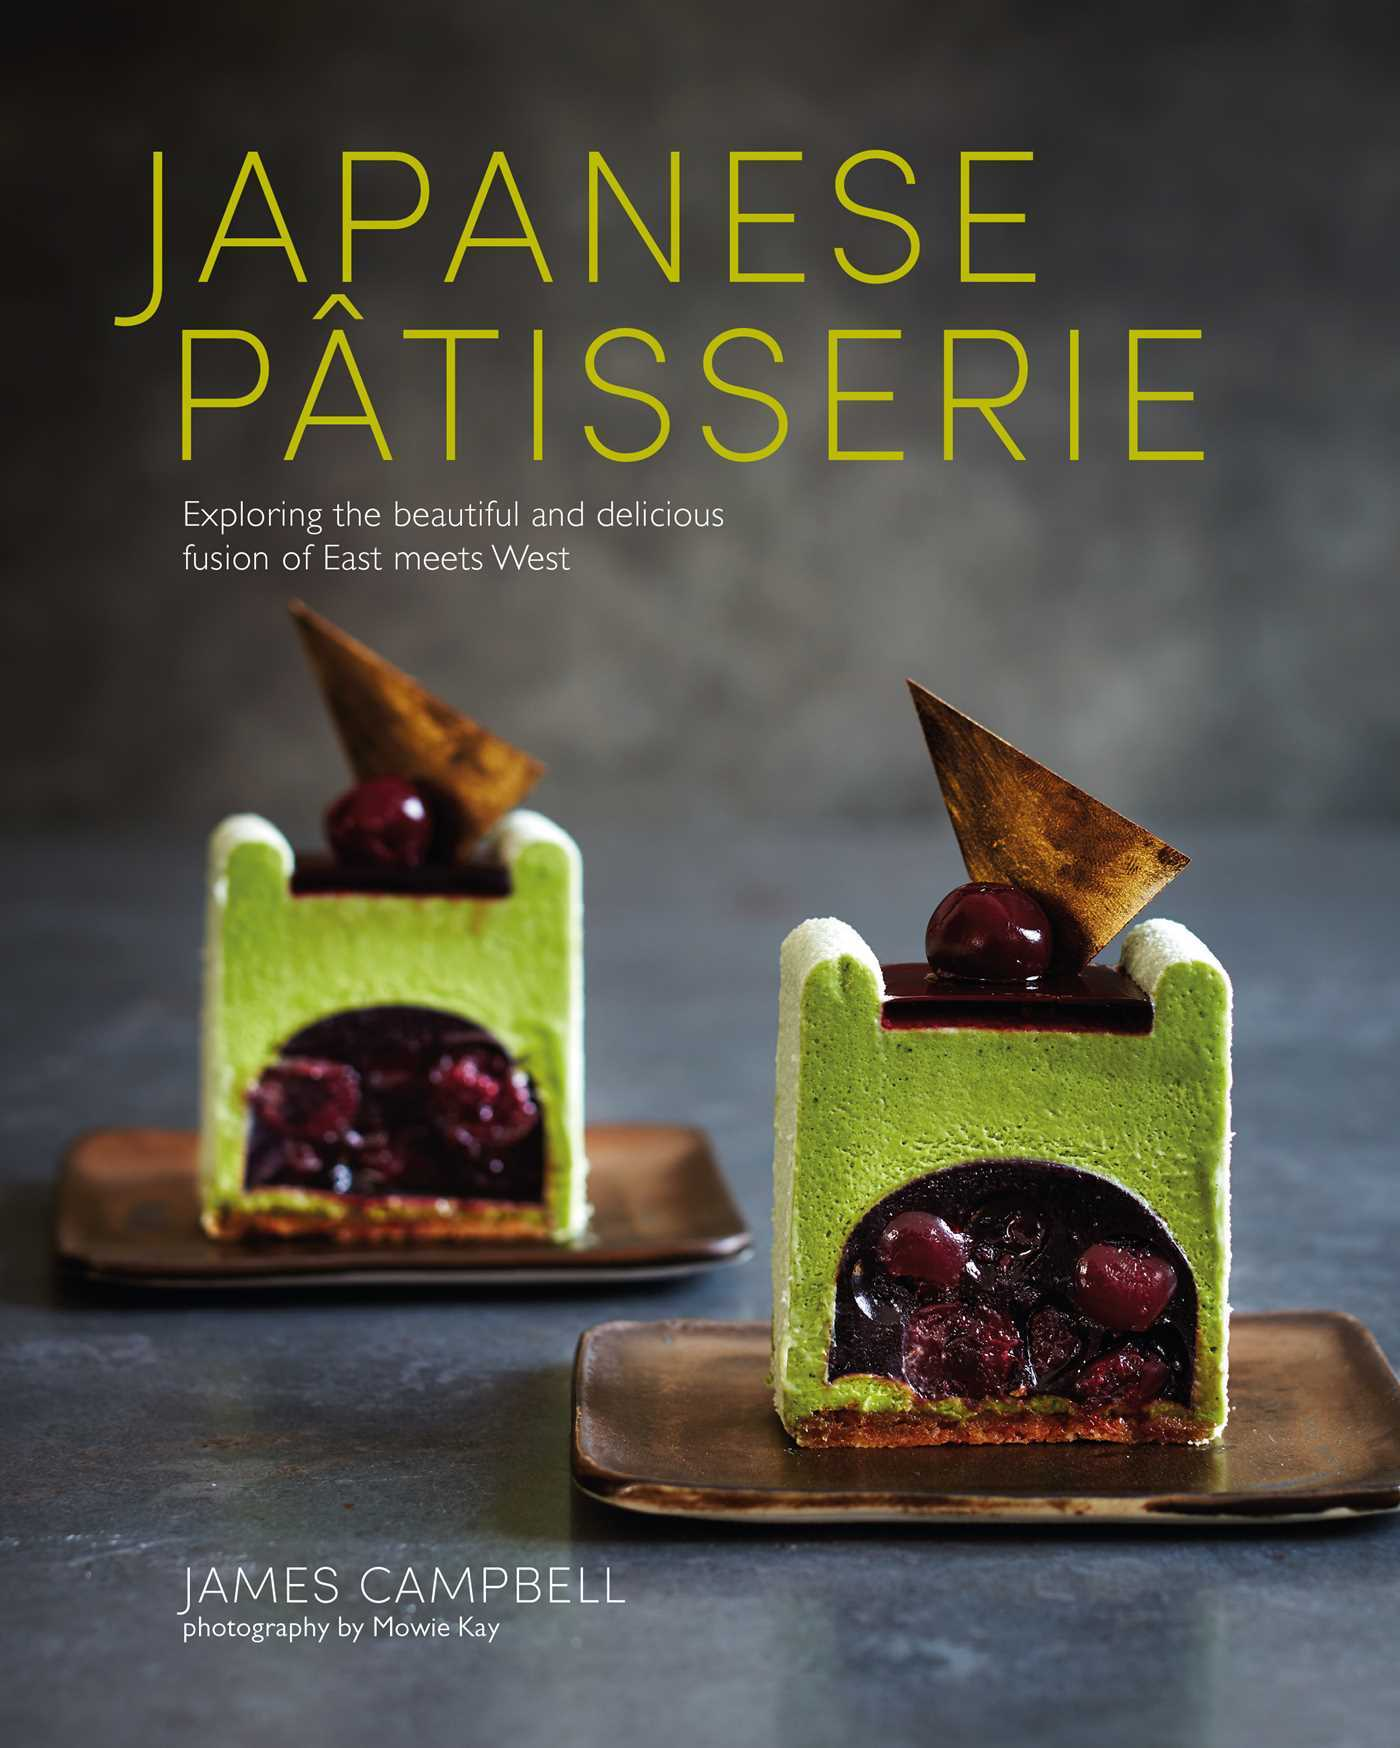 Japanese Patisserie Exploring the beautiful and delicious fusion of East meets West